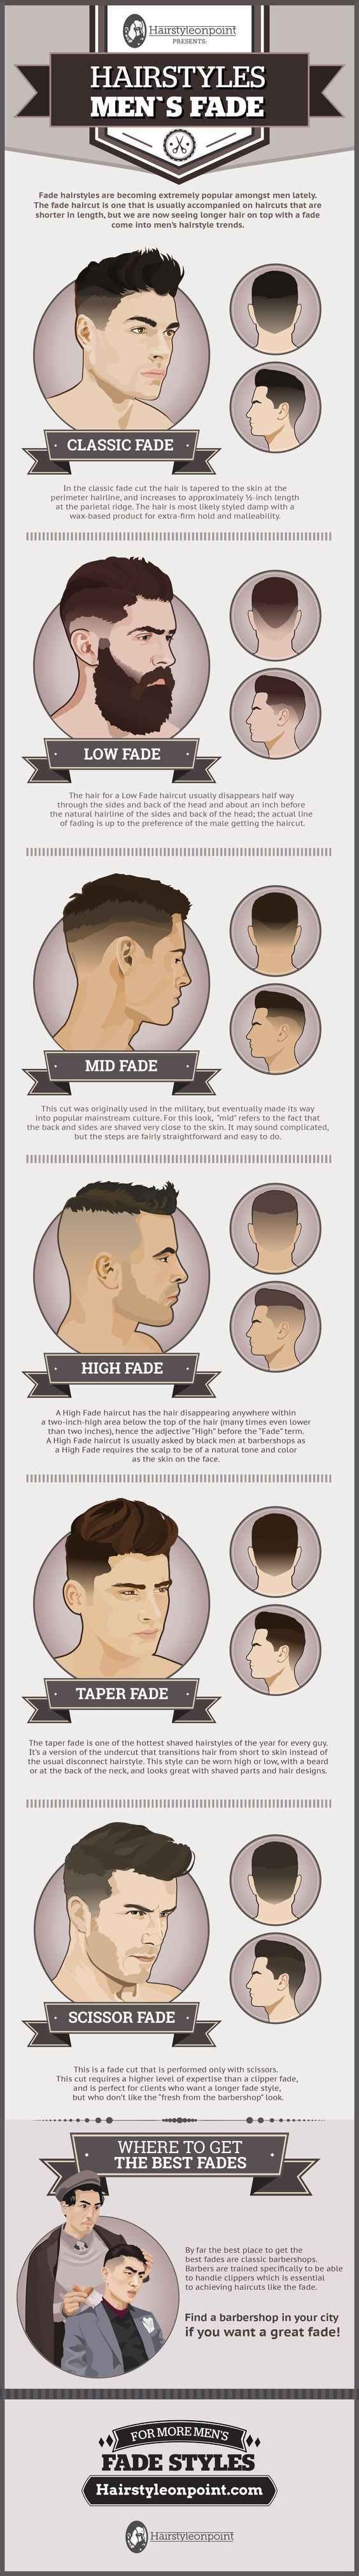 This is the trendiest haircut for guys right now #trends #men #hairstyle: